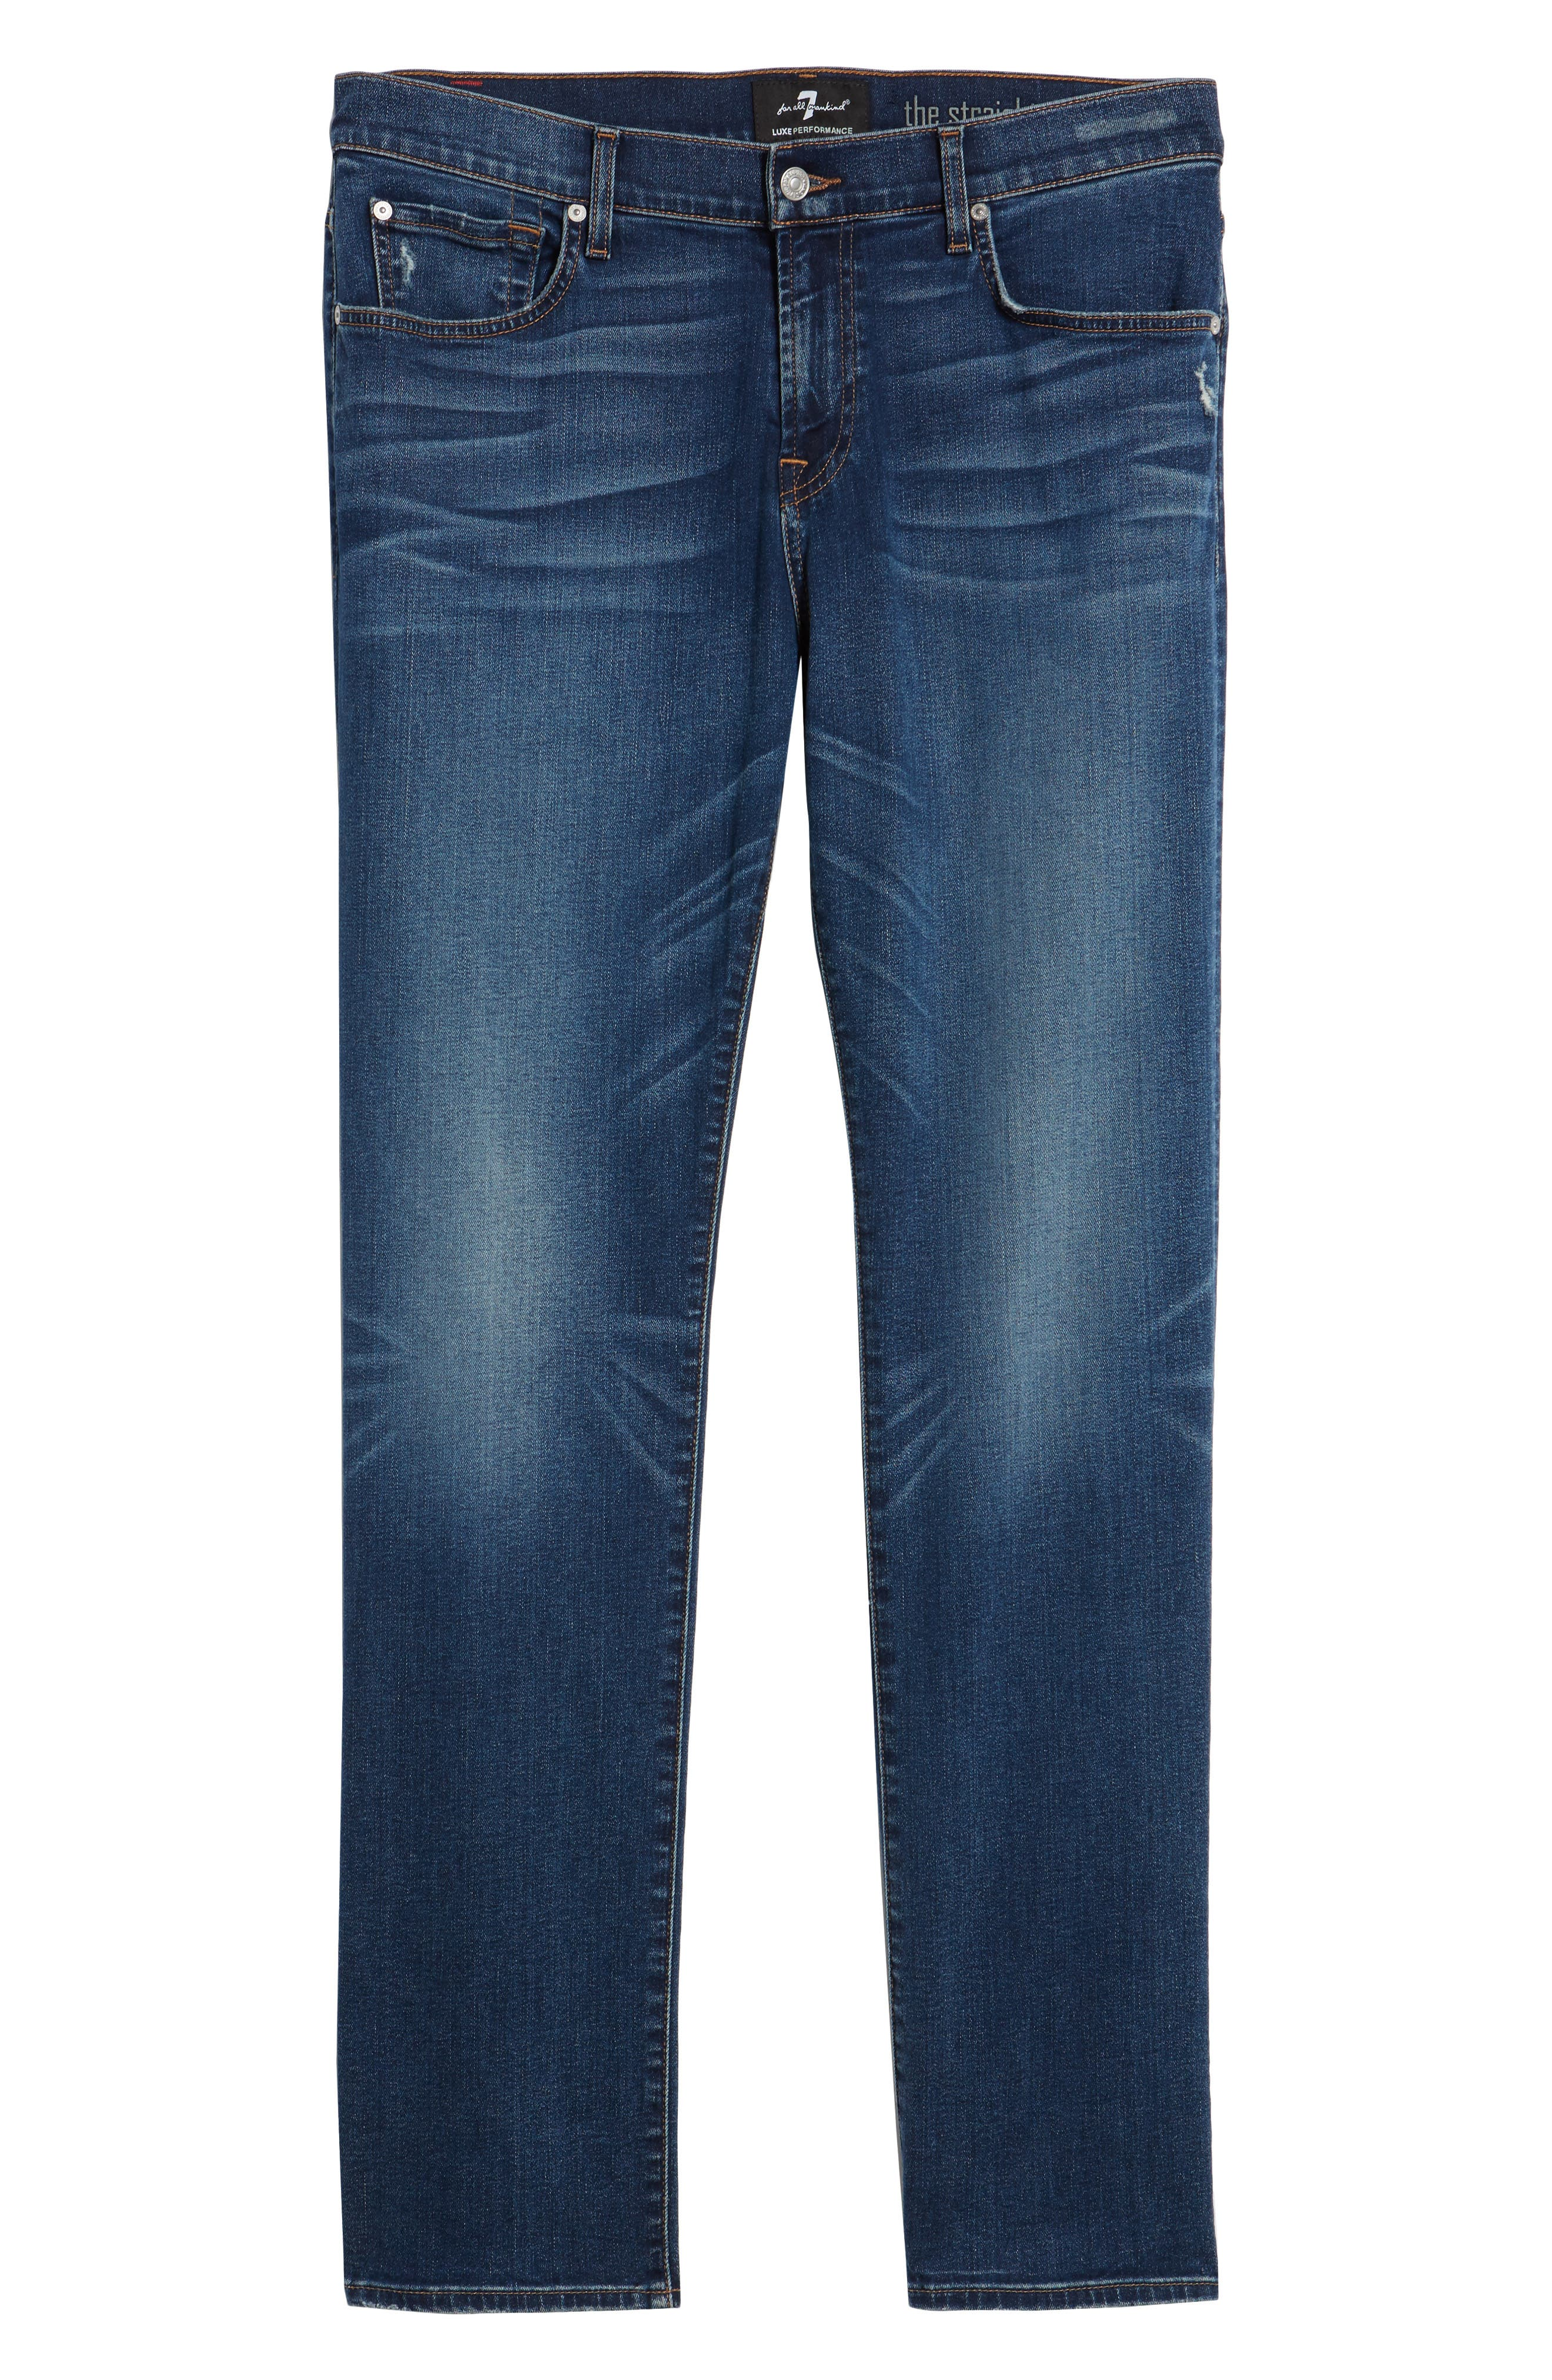 7 FOR ALL MANKIND<SUP>®</SUP>, The Straight - Luxe Performance Slim Straight Leg Jeans, Alternate thumbnail 6, color, LUXE PERFORMANCE UNION